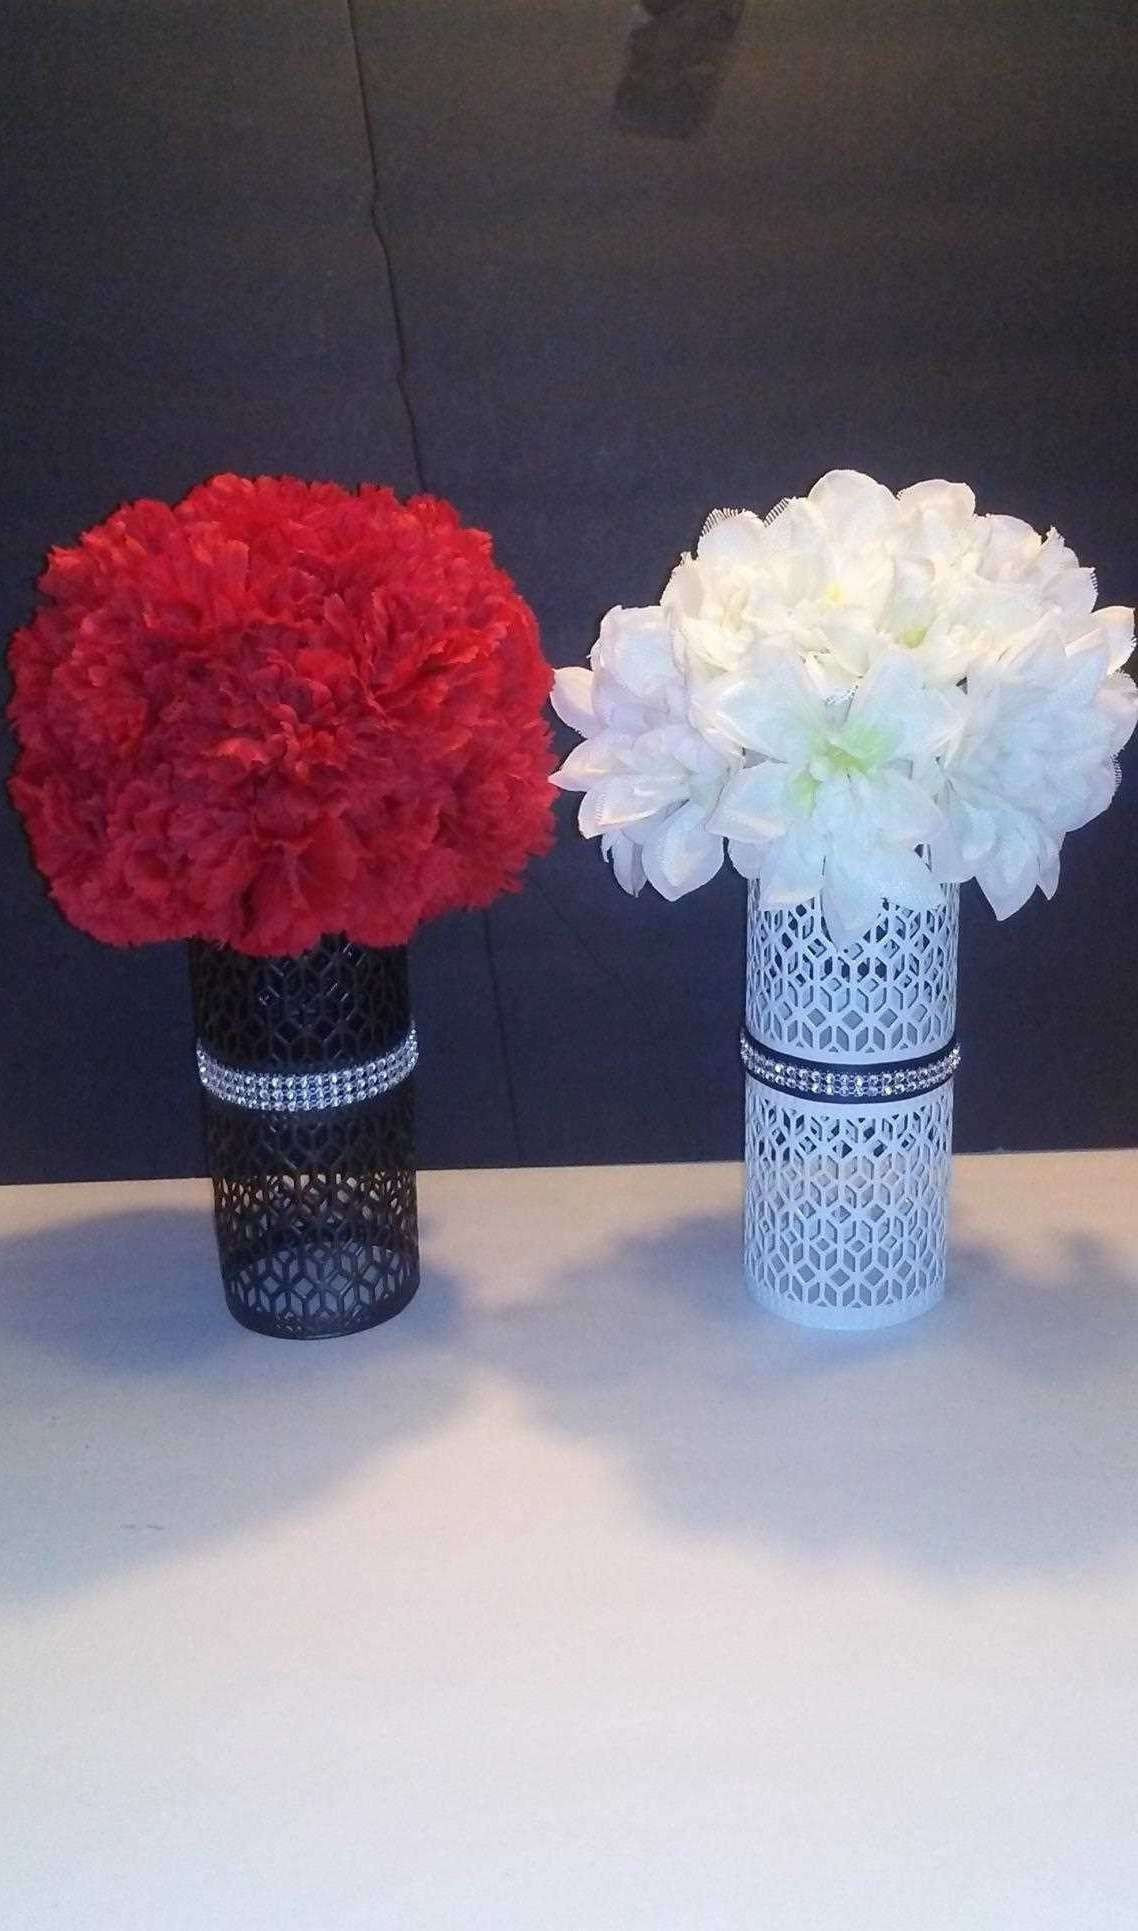 black floral vase of flower table decorations for weddings inspirational h vases ideas intended for flower table decorations for weddings best of red table vases s hobby lobby table lamps design